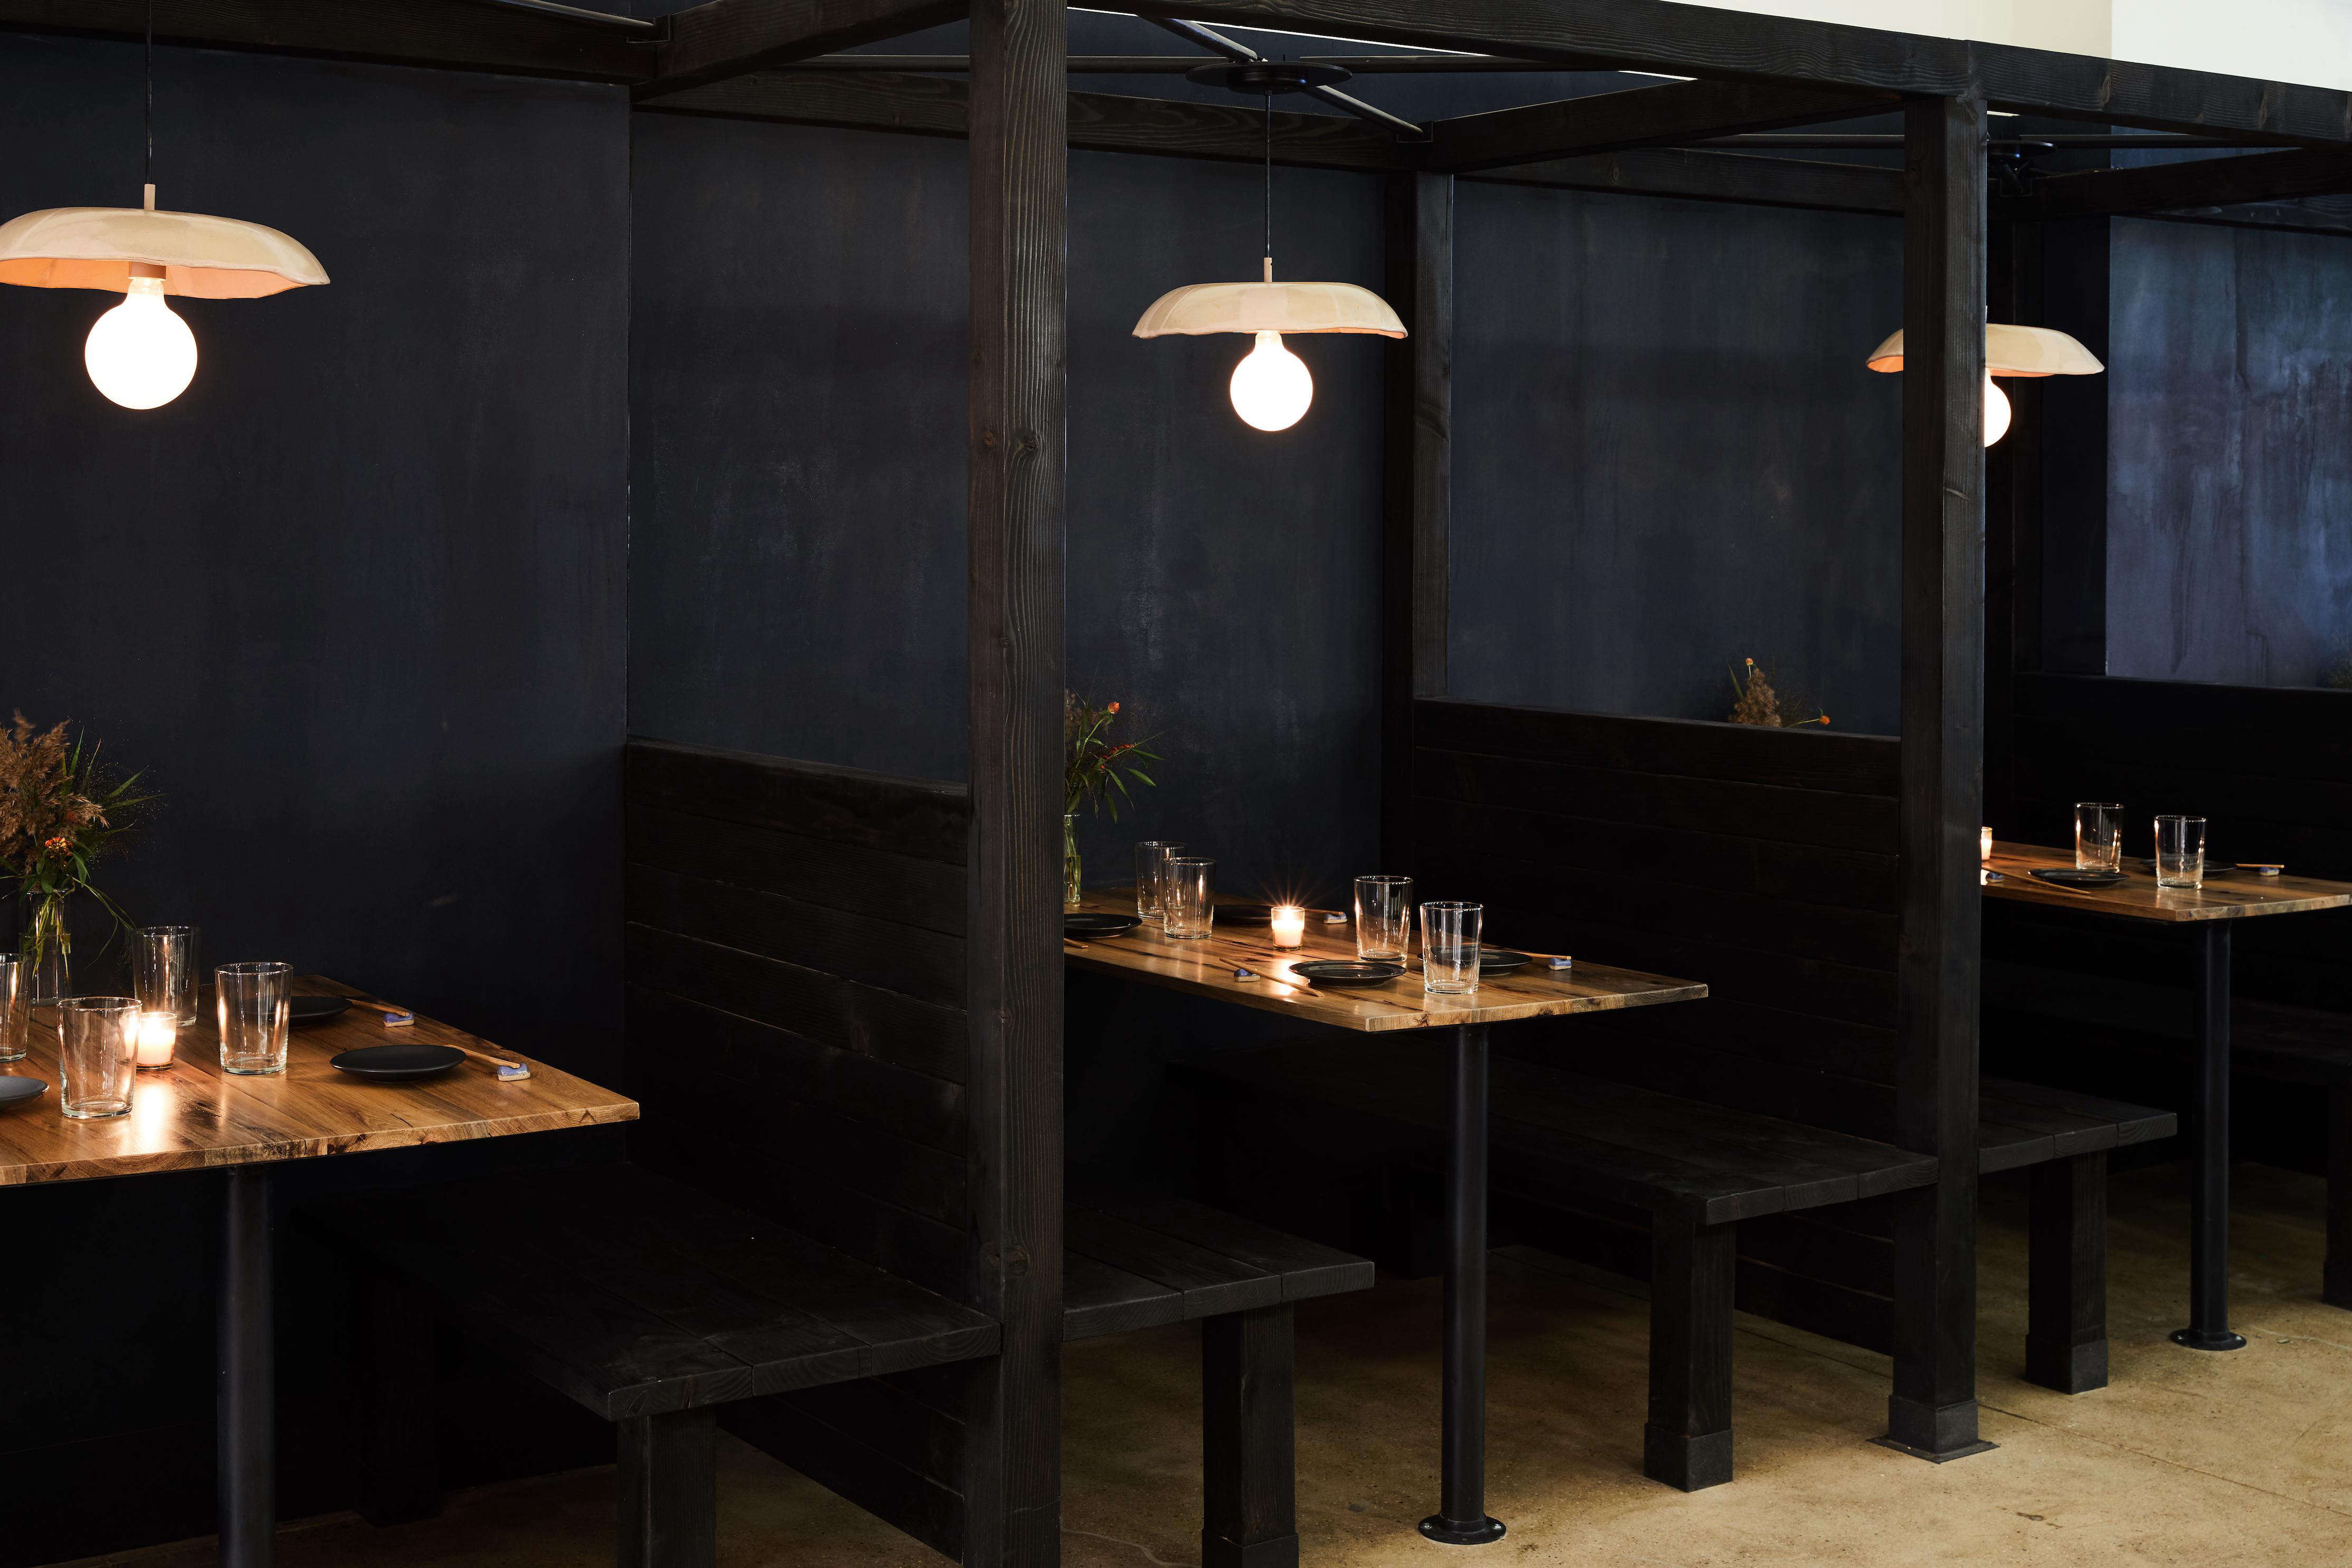 Lit Mobilier De France 9 Design Ideas For Small Dark Rooms From Tonchin New York